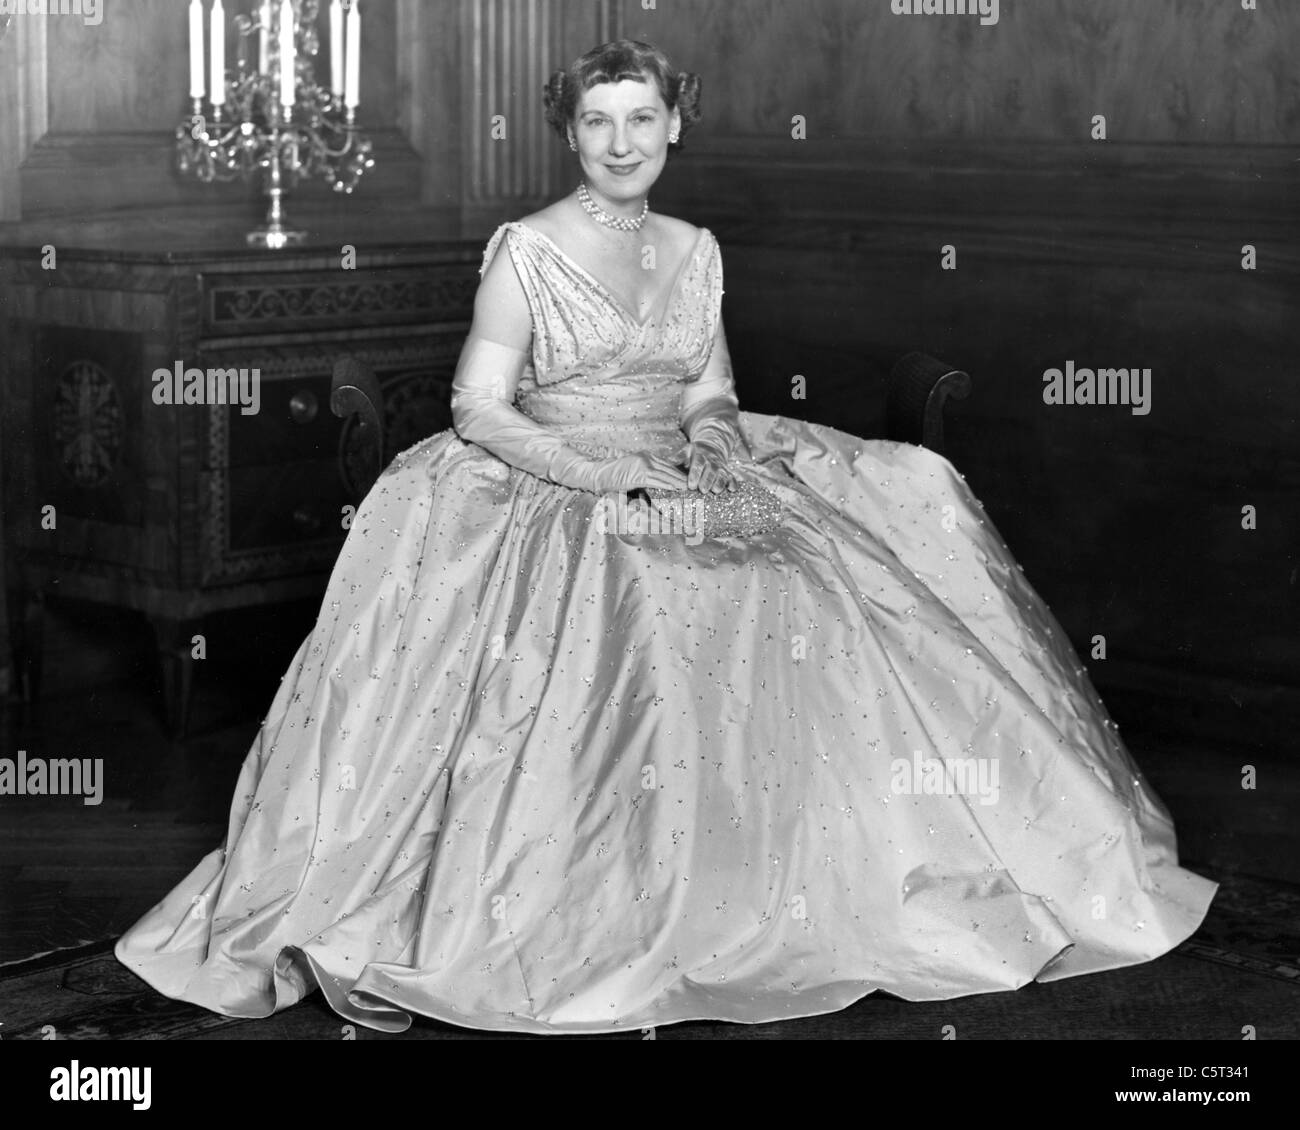 MAMIE EISENHOWER (1896-1979) wife of President Eisenhower in her 1953 Inauguaration gown. Photo Larry Gordon - Stock Image